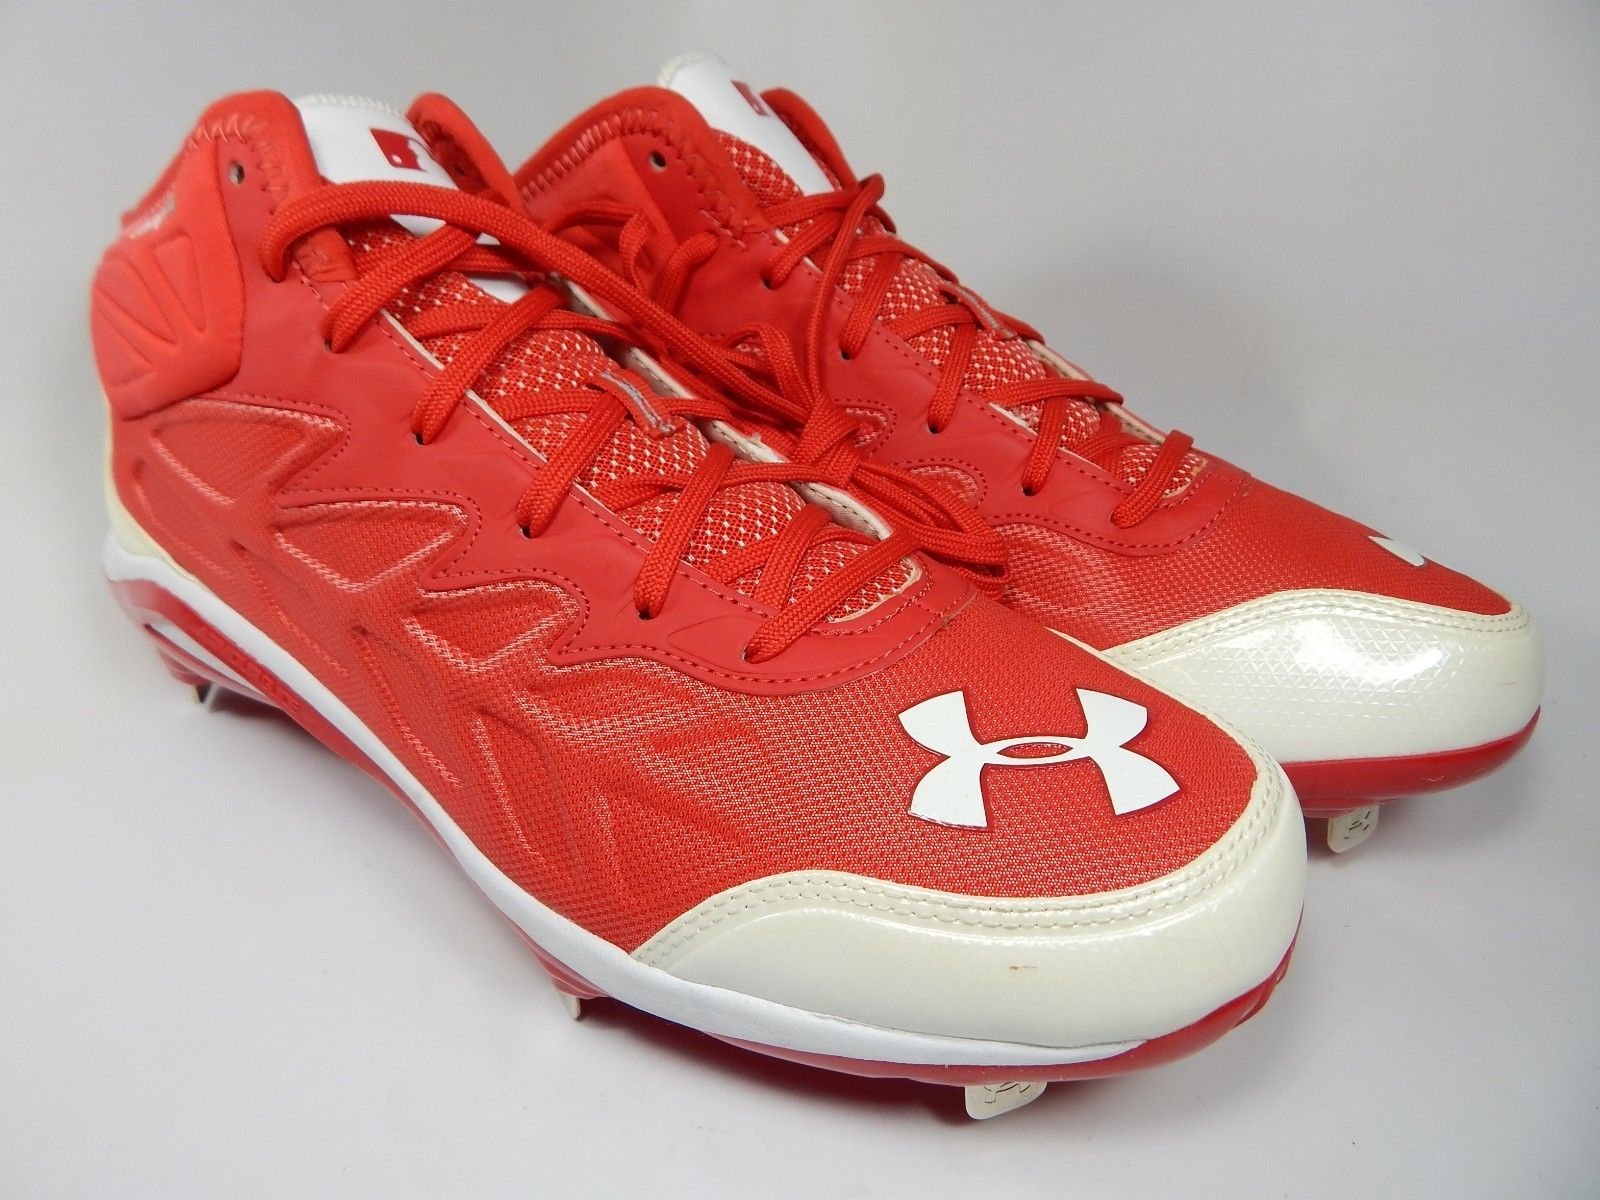 promo code 56718 9a00d Under Armour Heater ST Mid Top Size 12 M EU and 50 similar items. 57